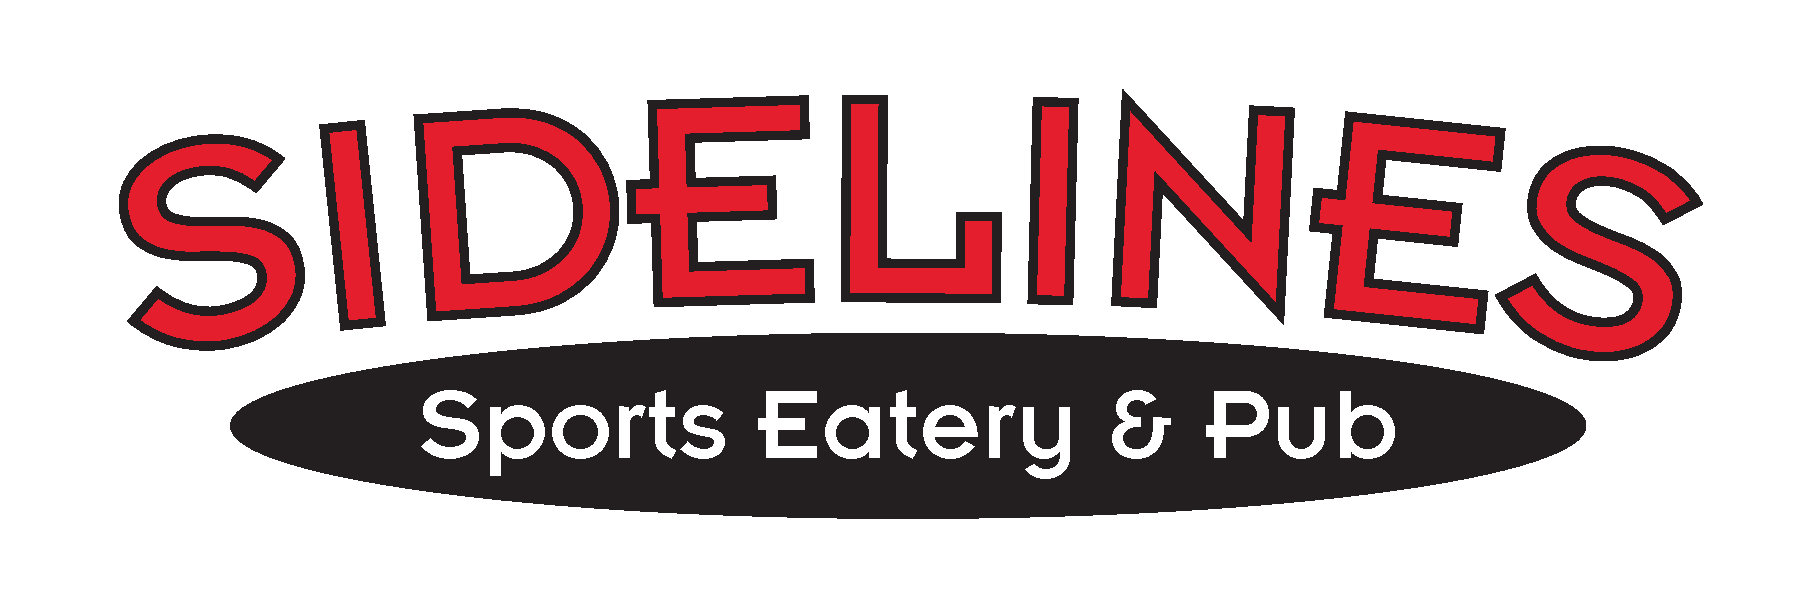 SIDELINES SPORTS EATERY (Mellwood)